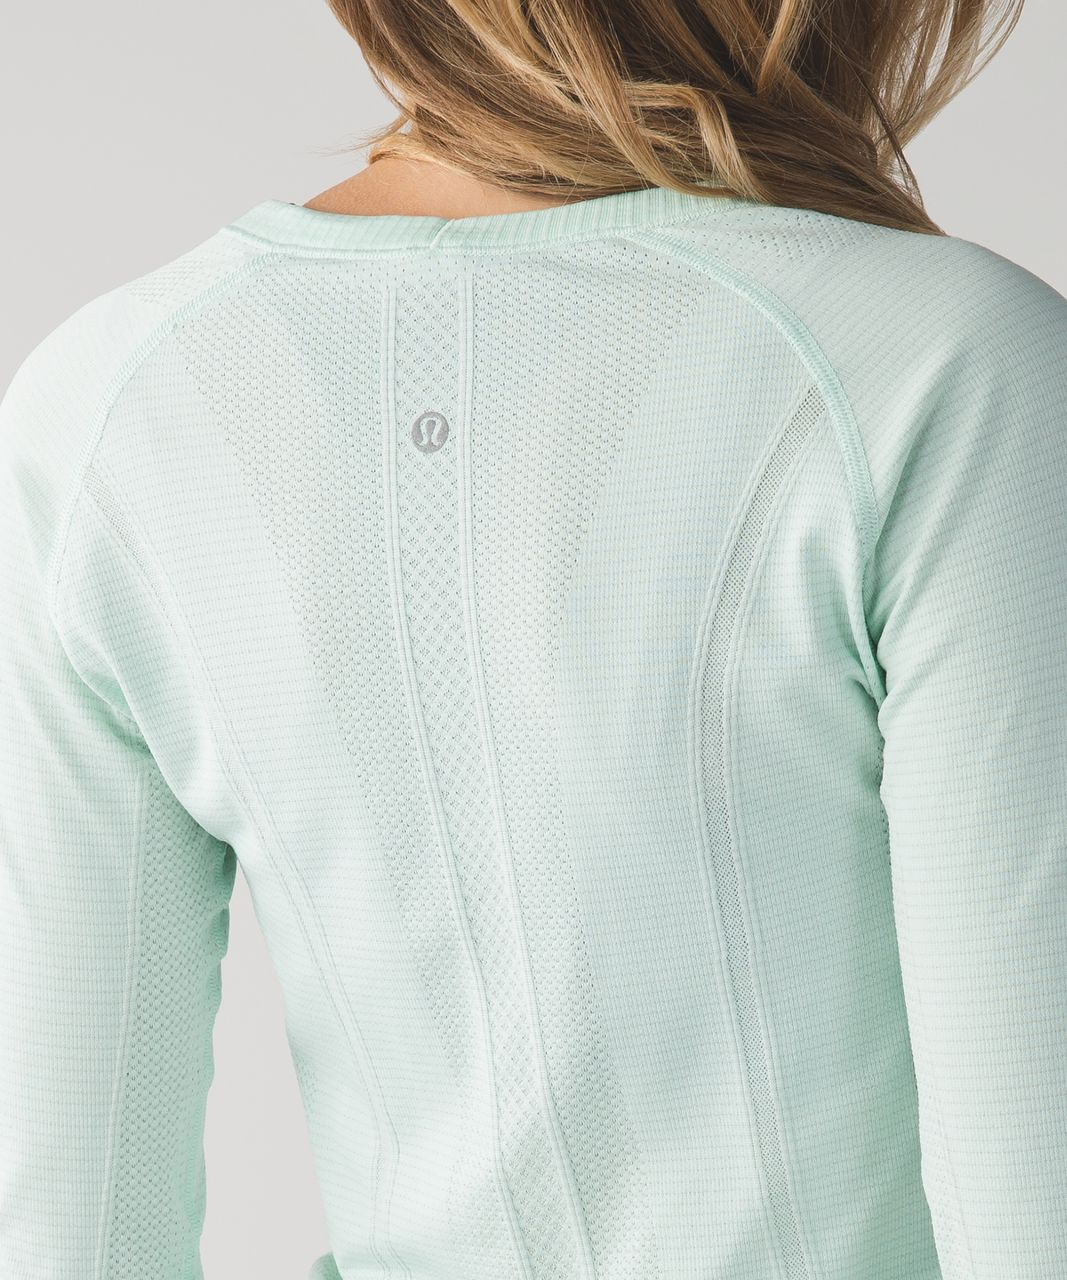 Lululemon Swiftly Tech Long Sleeve Crew (First Release) - Heathered Sea Mist